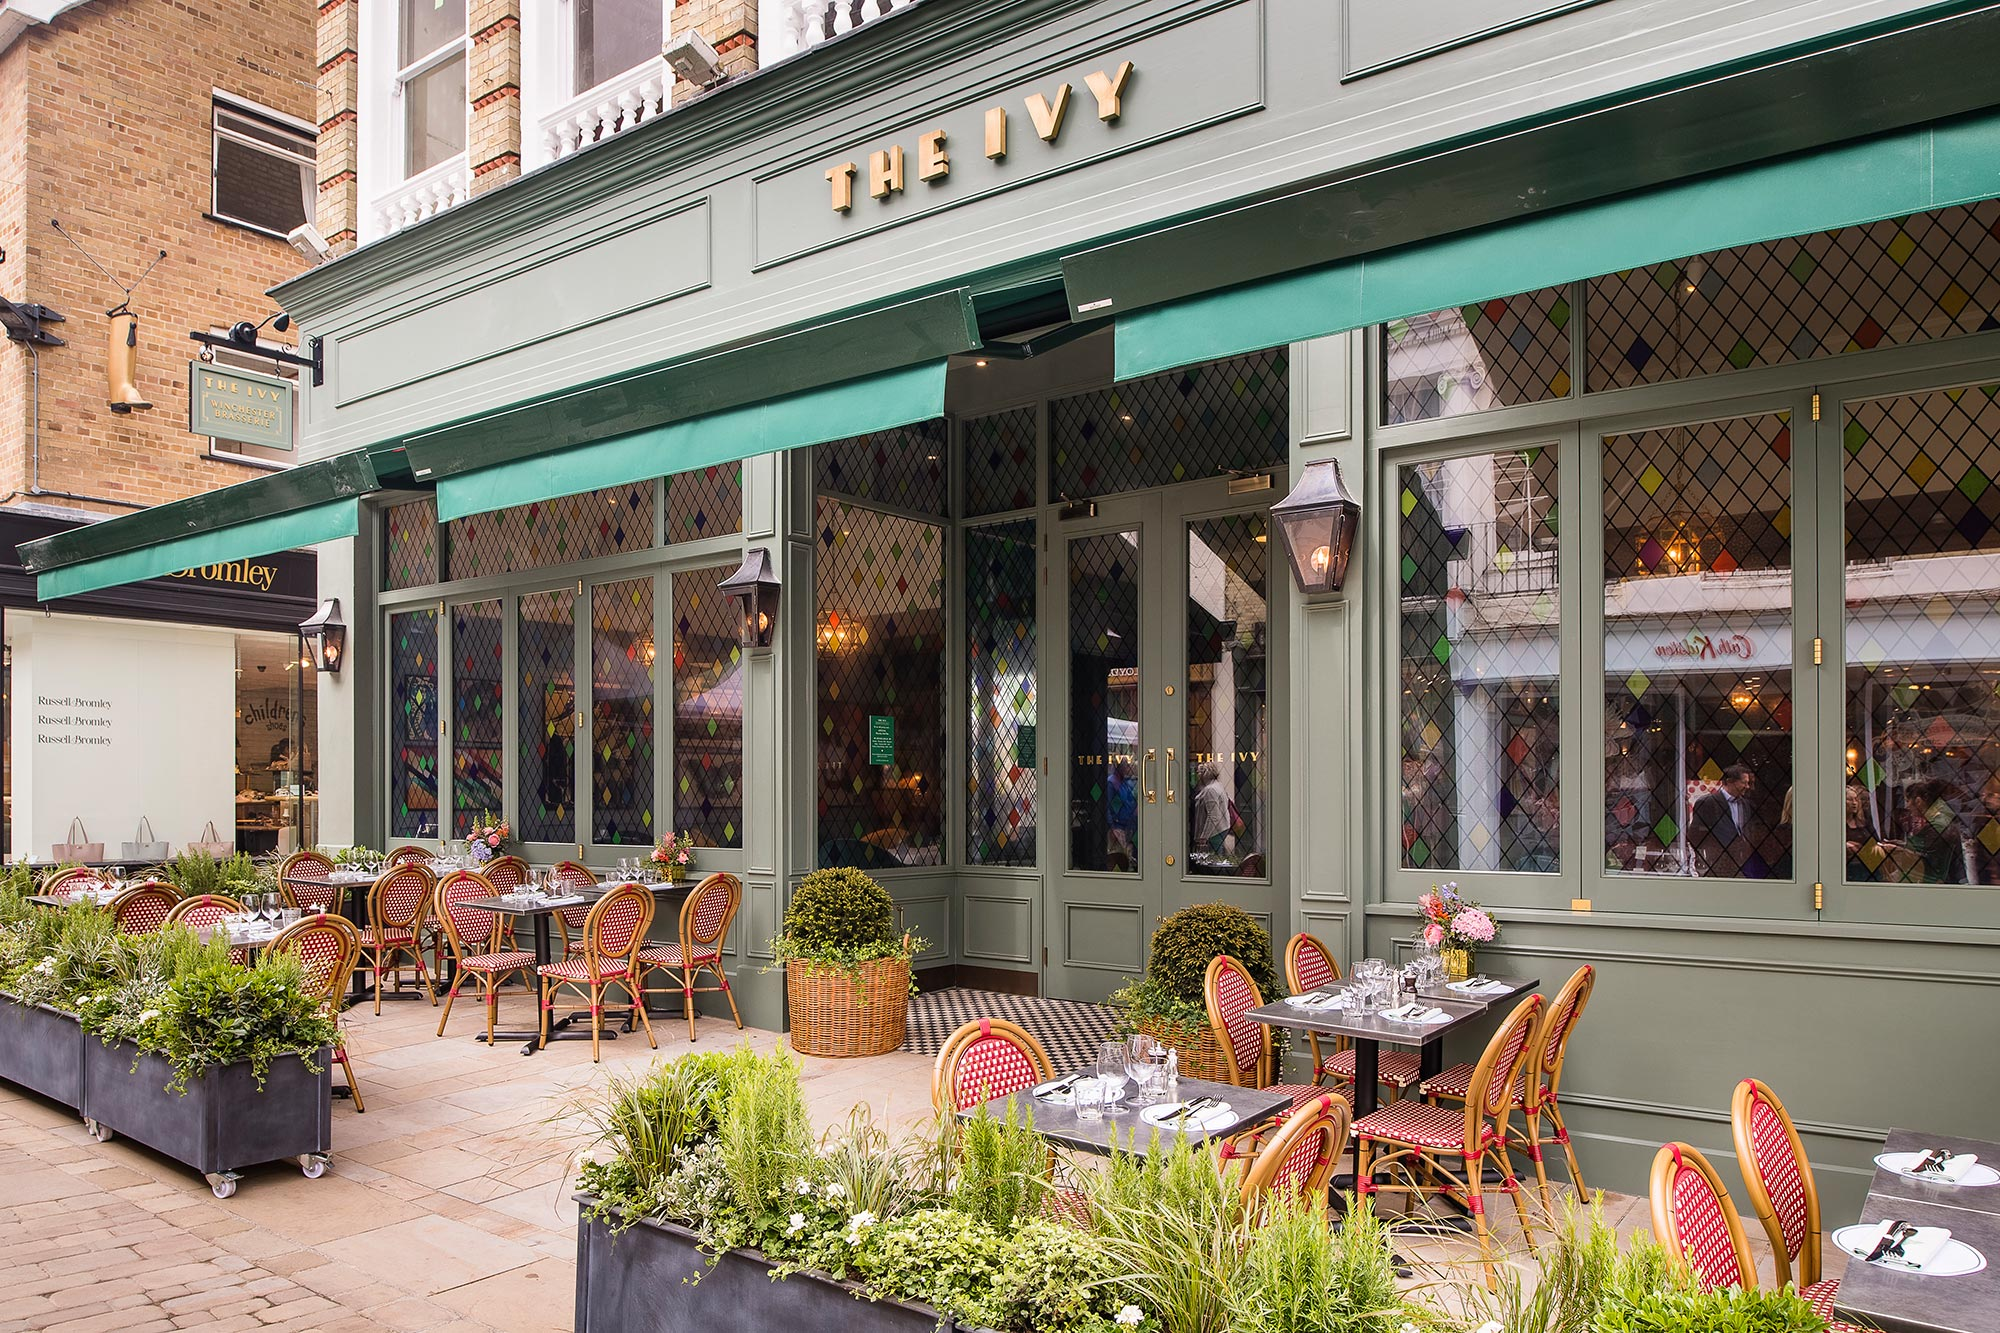 Terrace dining at The Ivy Winchester Brasserie - The Ivy Winchester Brasserie